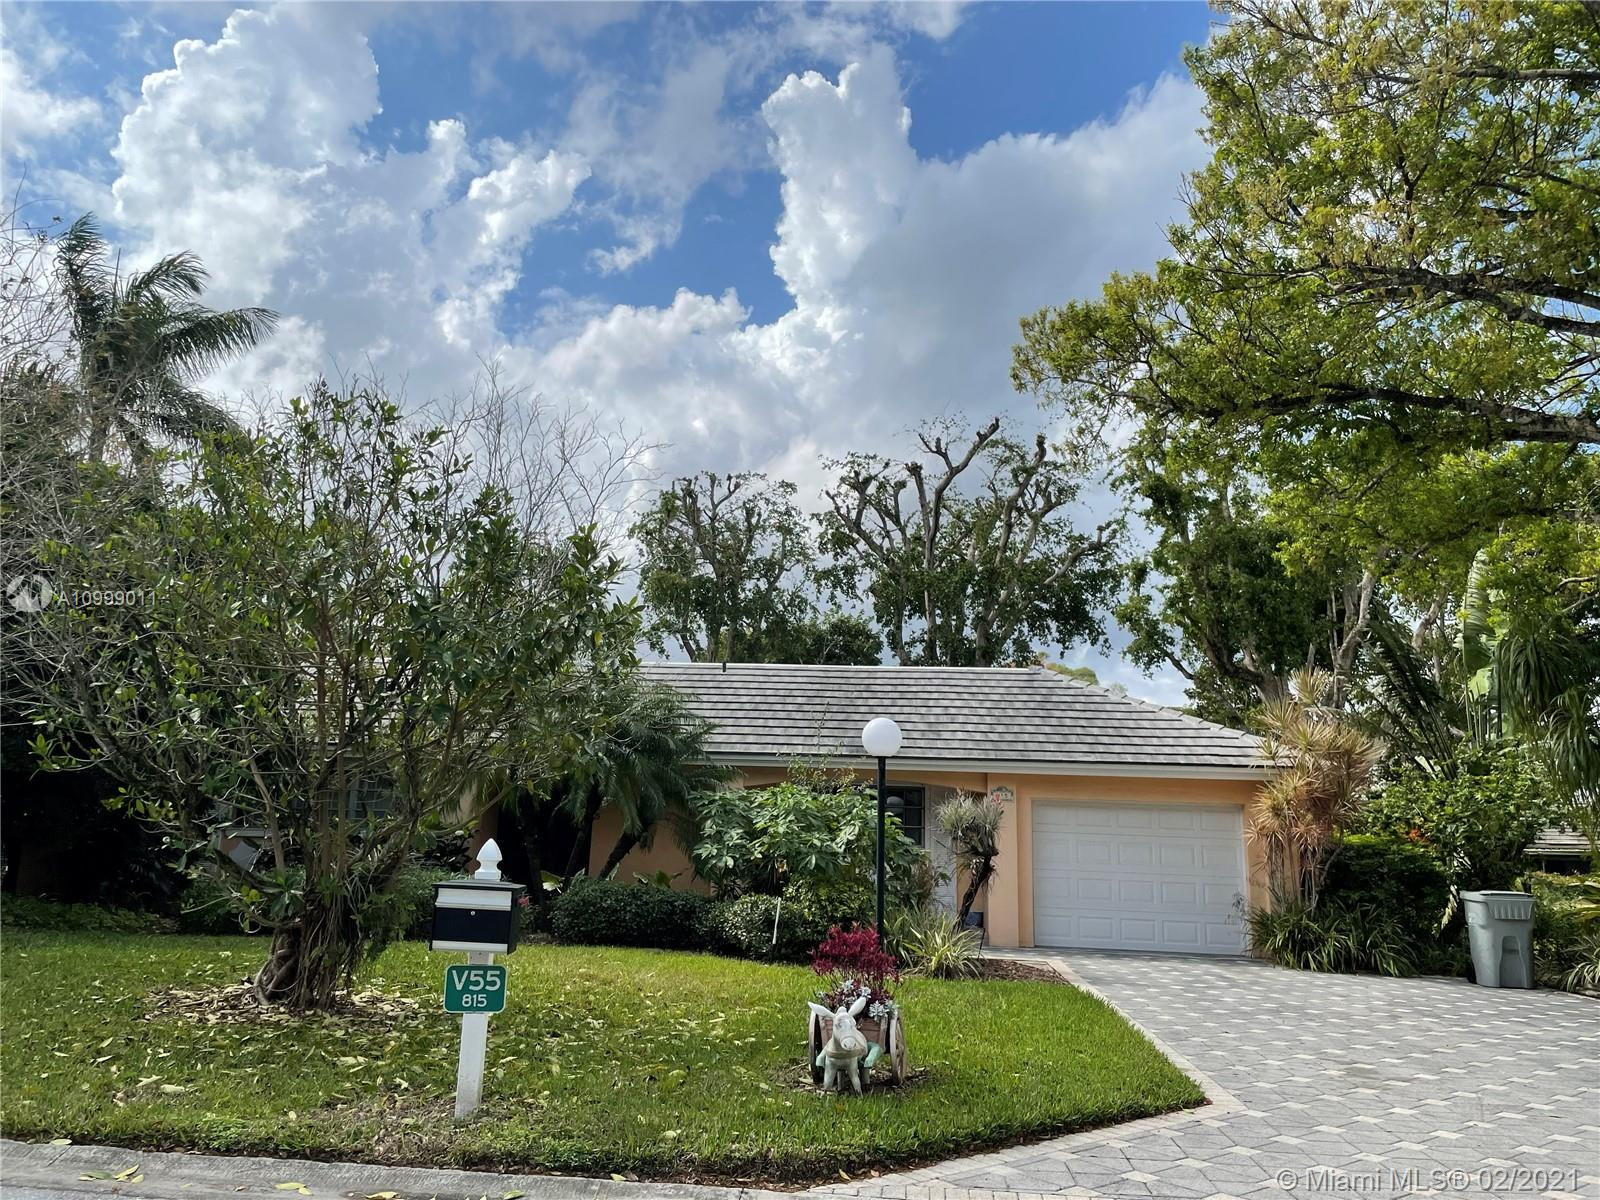 Beautiful Villa in Palm Aire Country Club. 3 bedrooms and 3 bathrooms, update kitchen, one car garage. Property comes with a generator, garden view. Property is very well located near shops, restaurants, main highways and 6 miles form the beaches. Condo requires 20% down and 720 minimum credit score.